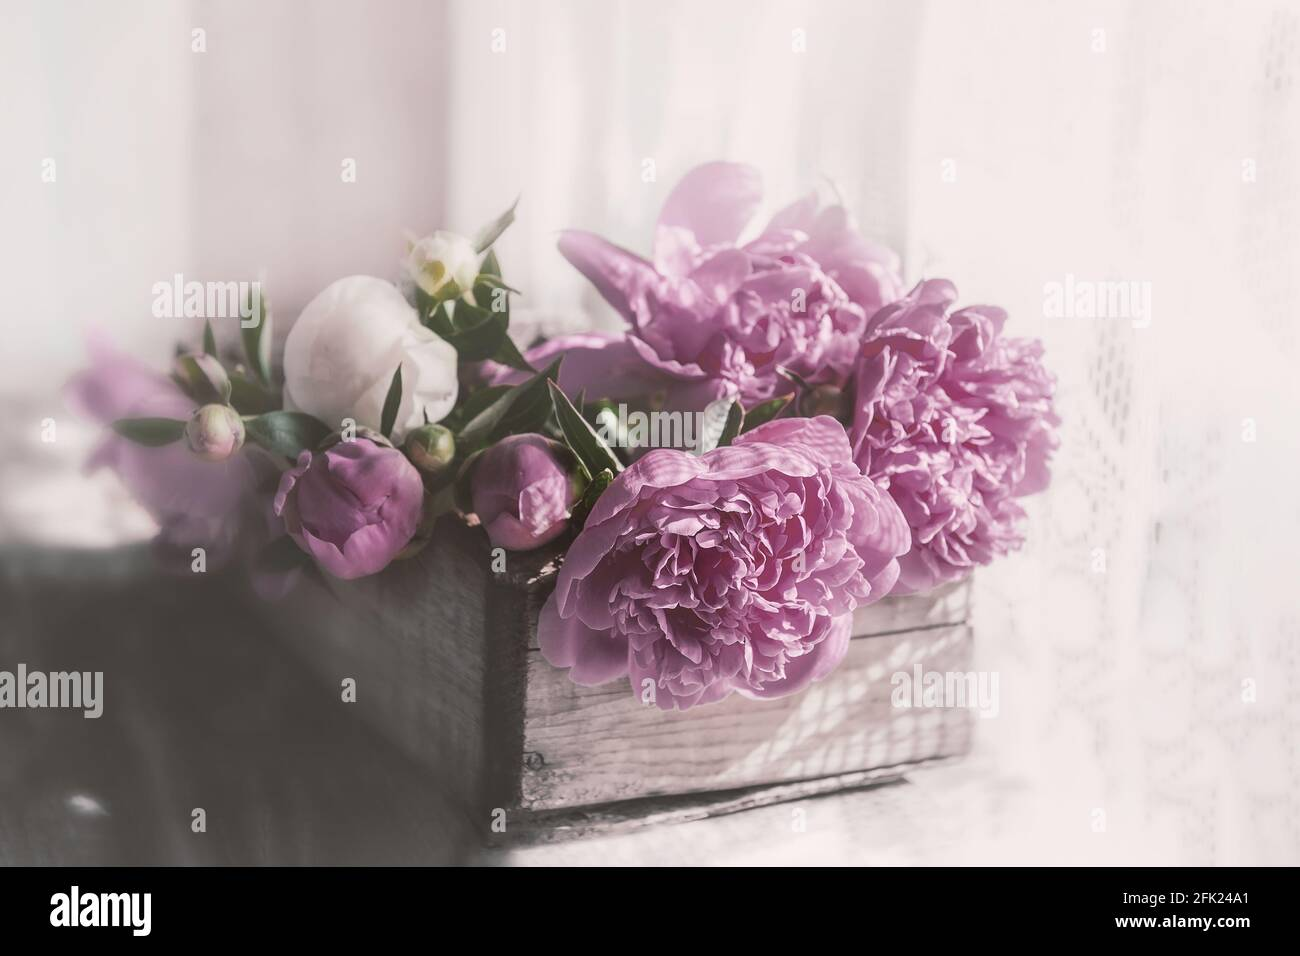 Romantic vintage pink peonies in an old wooden textured box. copy space. Stock Photo